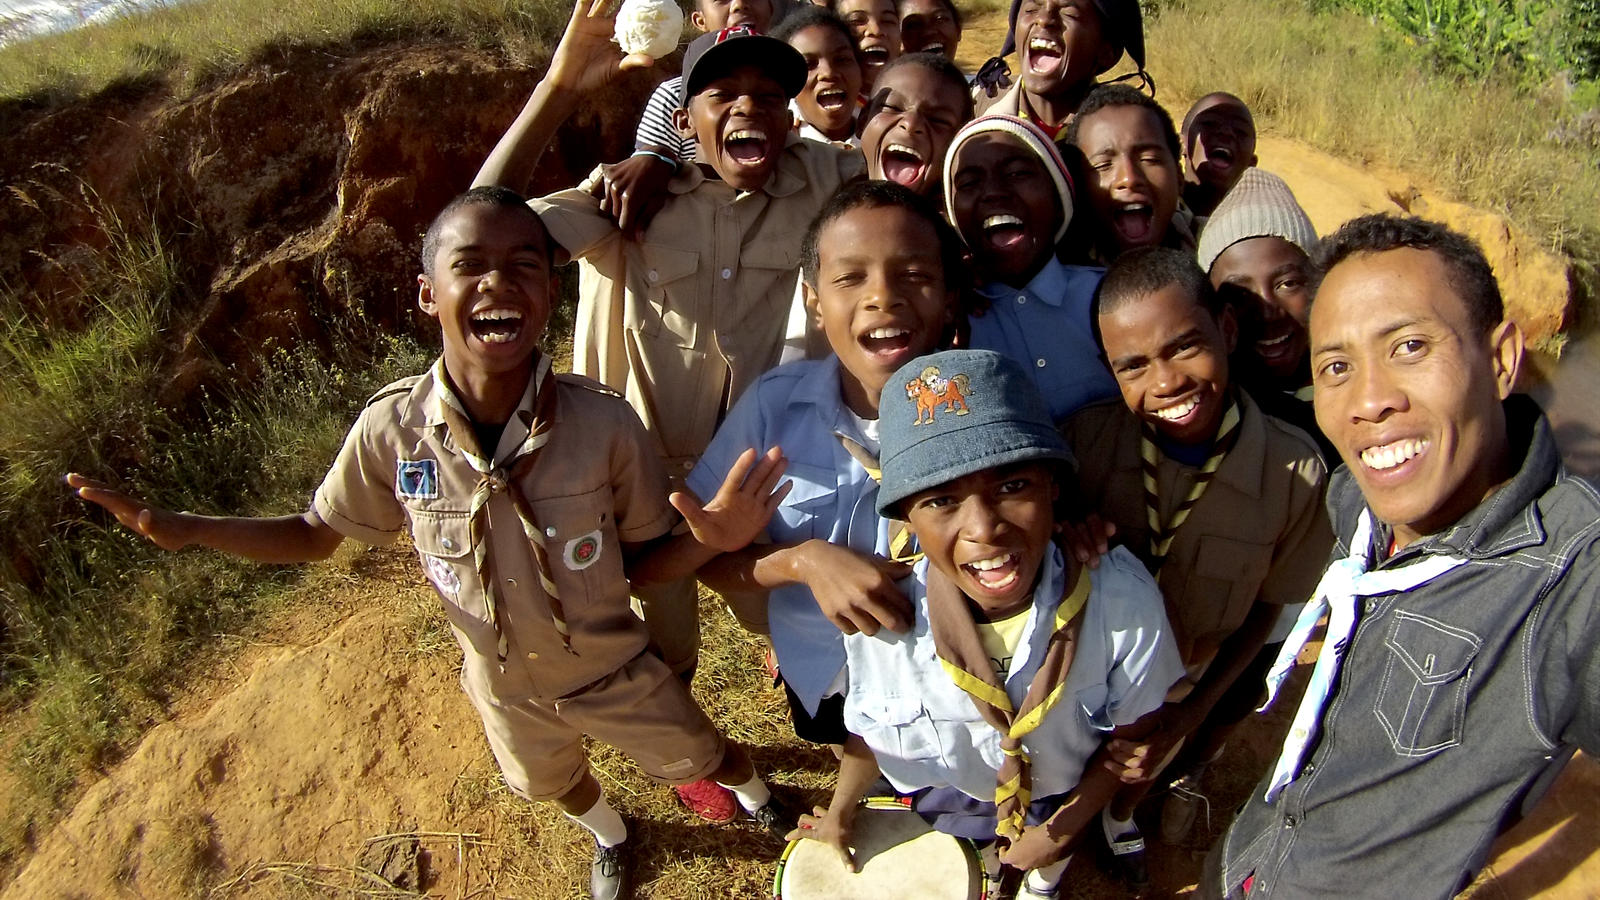 Ernest takes a selfie with Scouts in Ankazobe district, Madagascar.